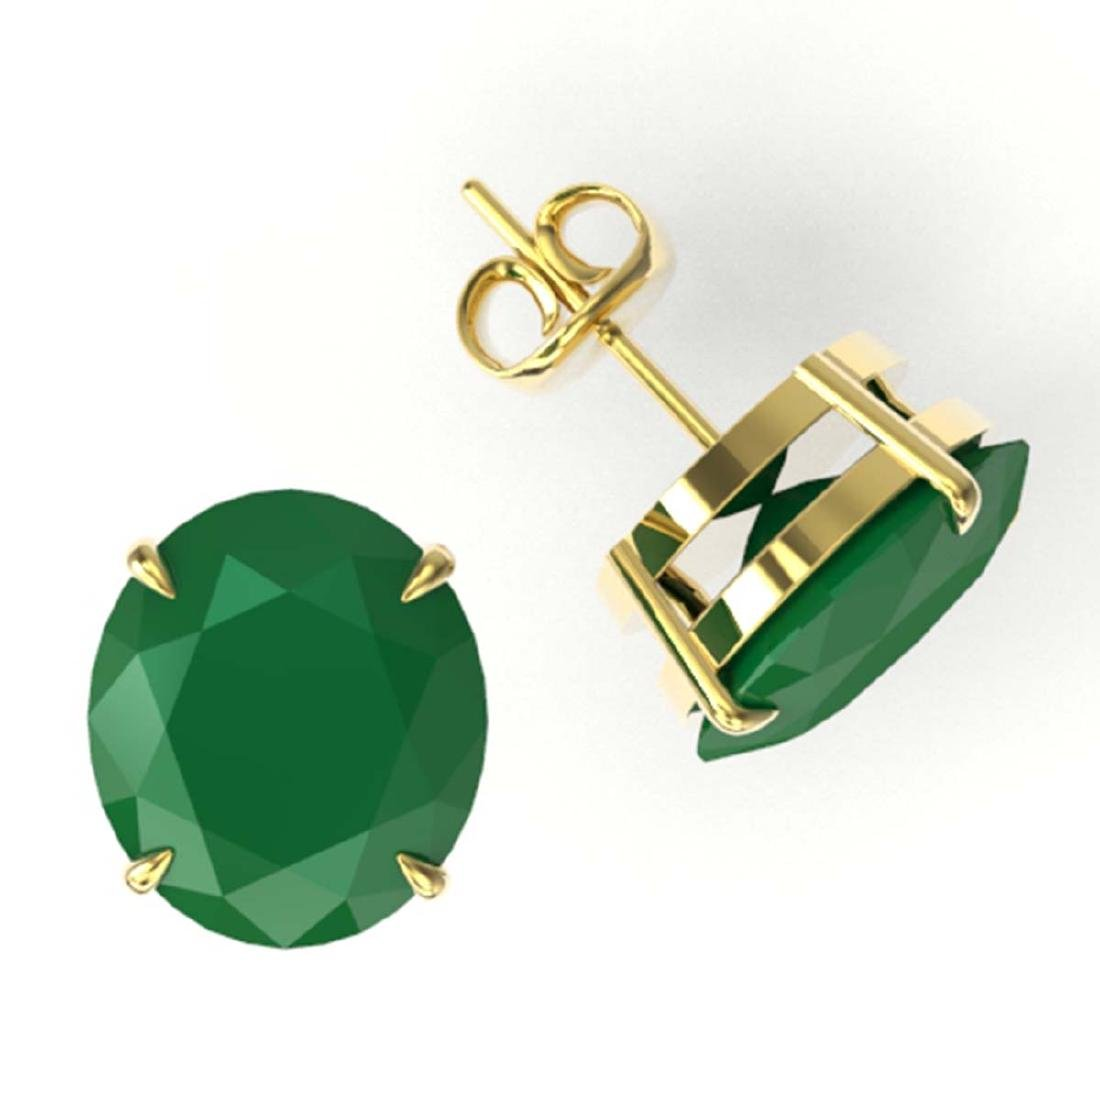 18 ctw Emerald Solitaire Stud Earrings 18K Yellow Gold - 2